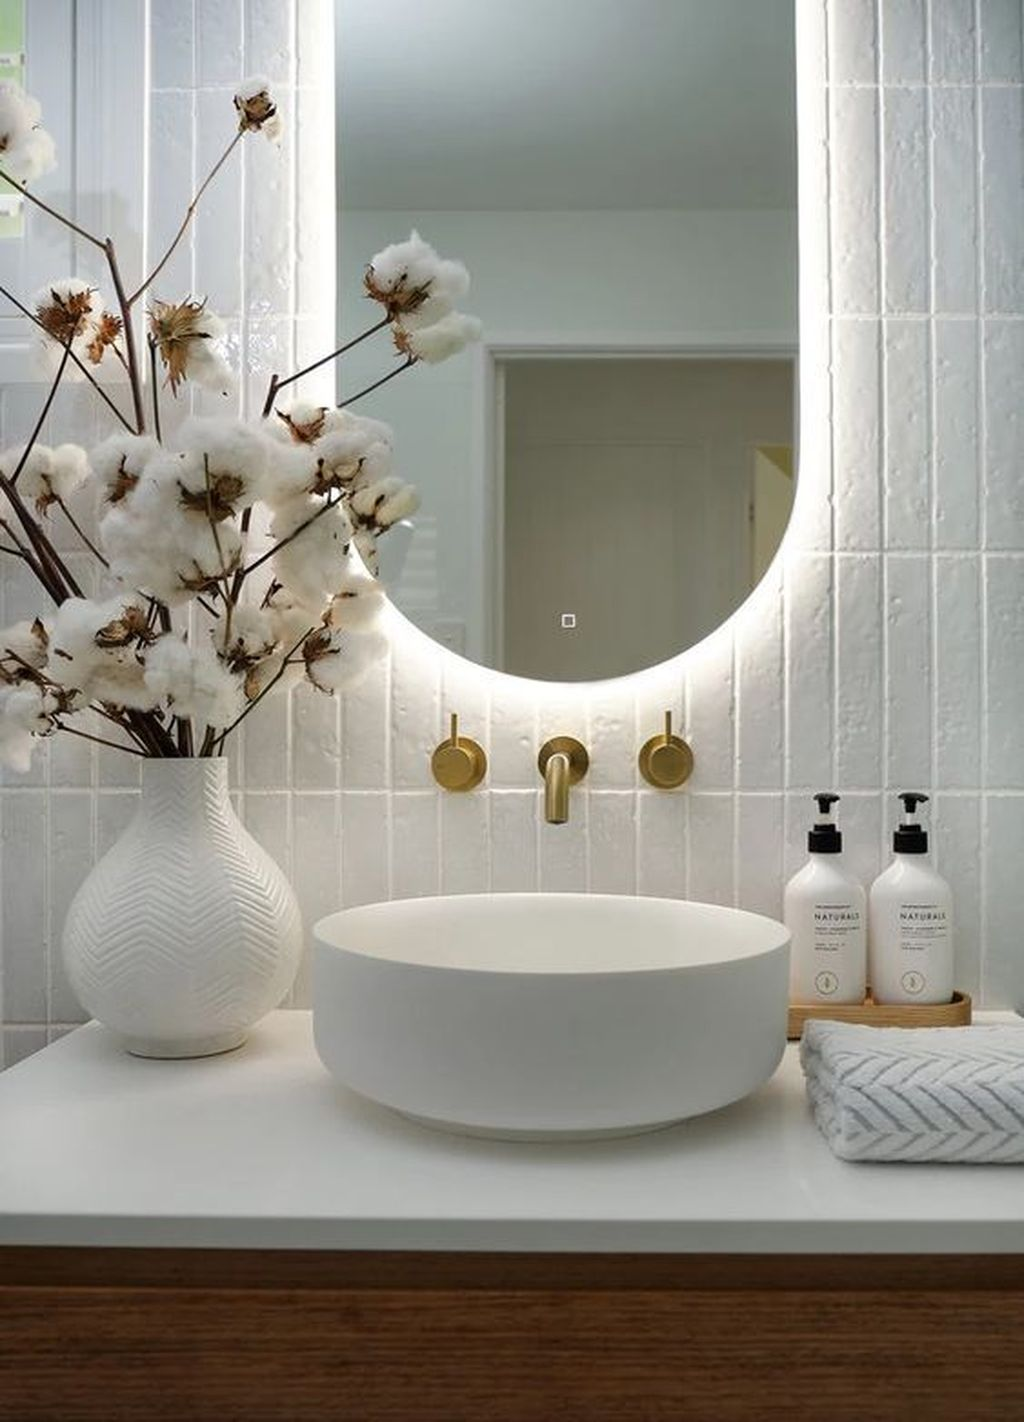 Inspiring Bathroom Interior Design Ideas 07